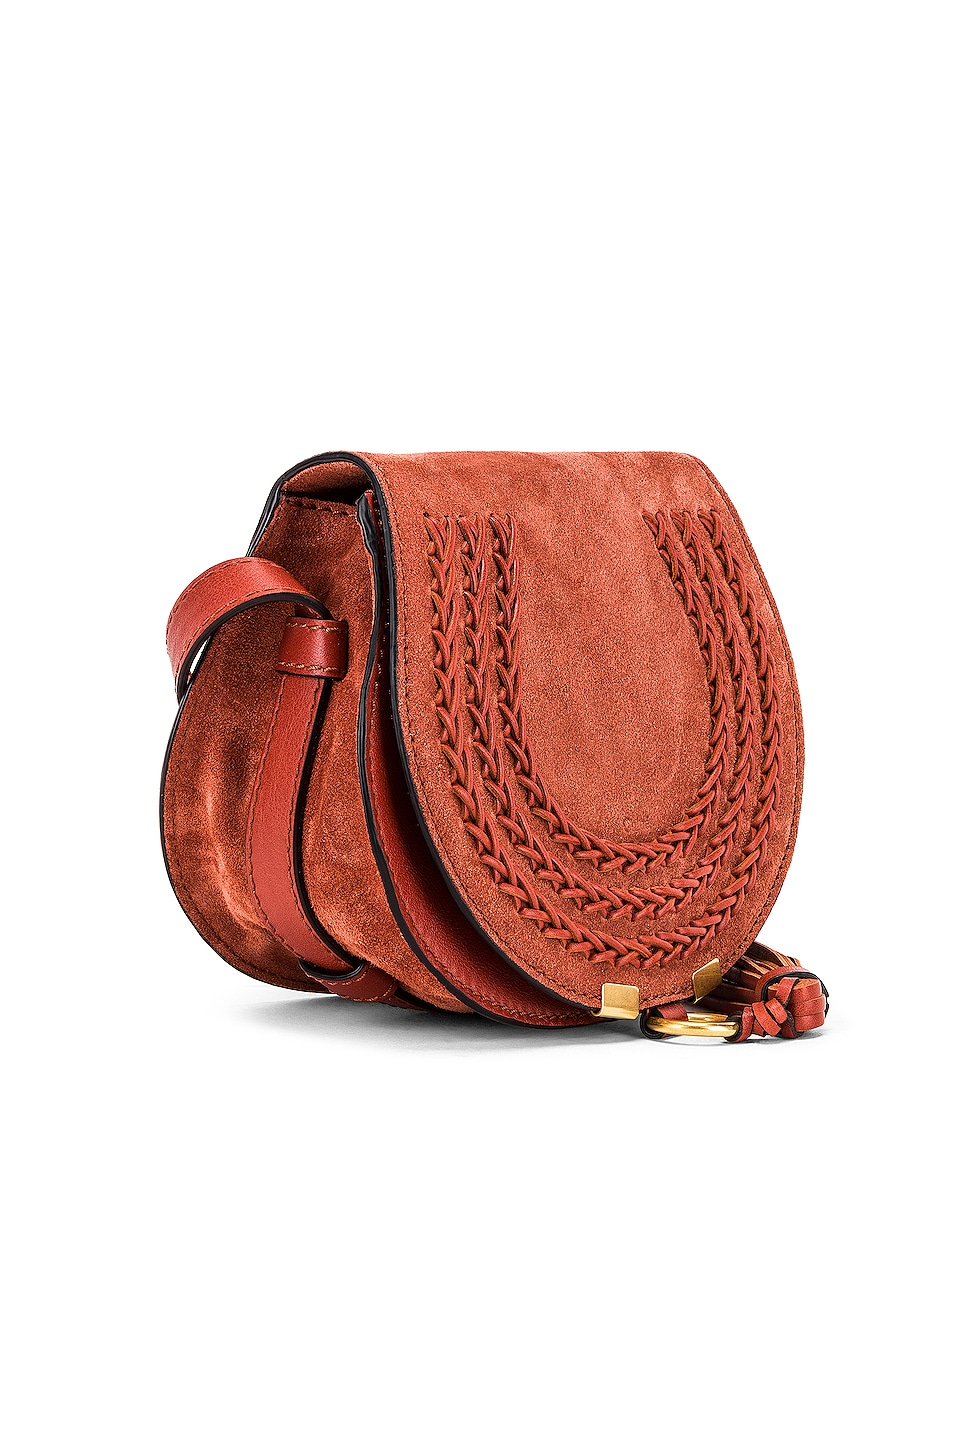 Image 4 of Chloe Small Leather Braid Marcie Satchel in Terracotta Red